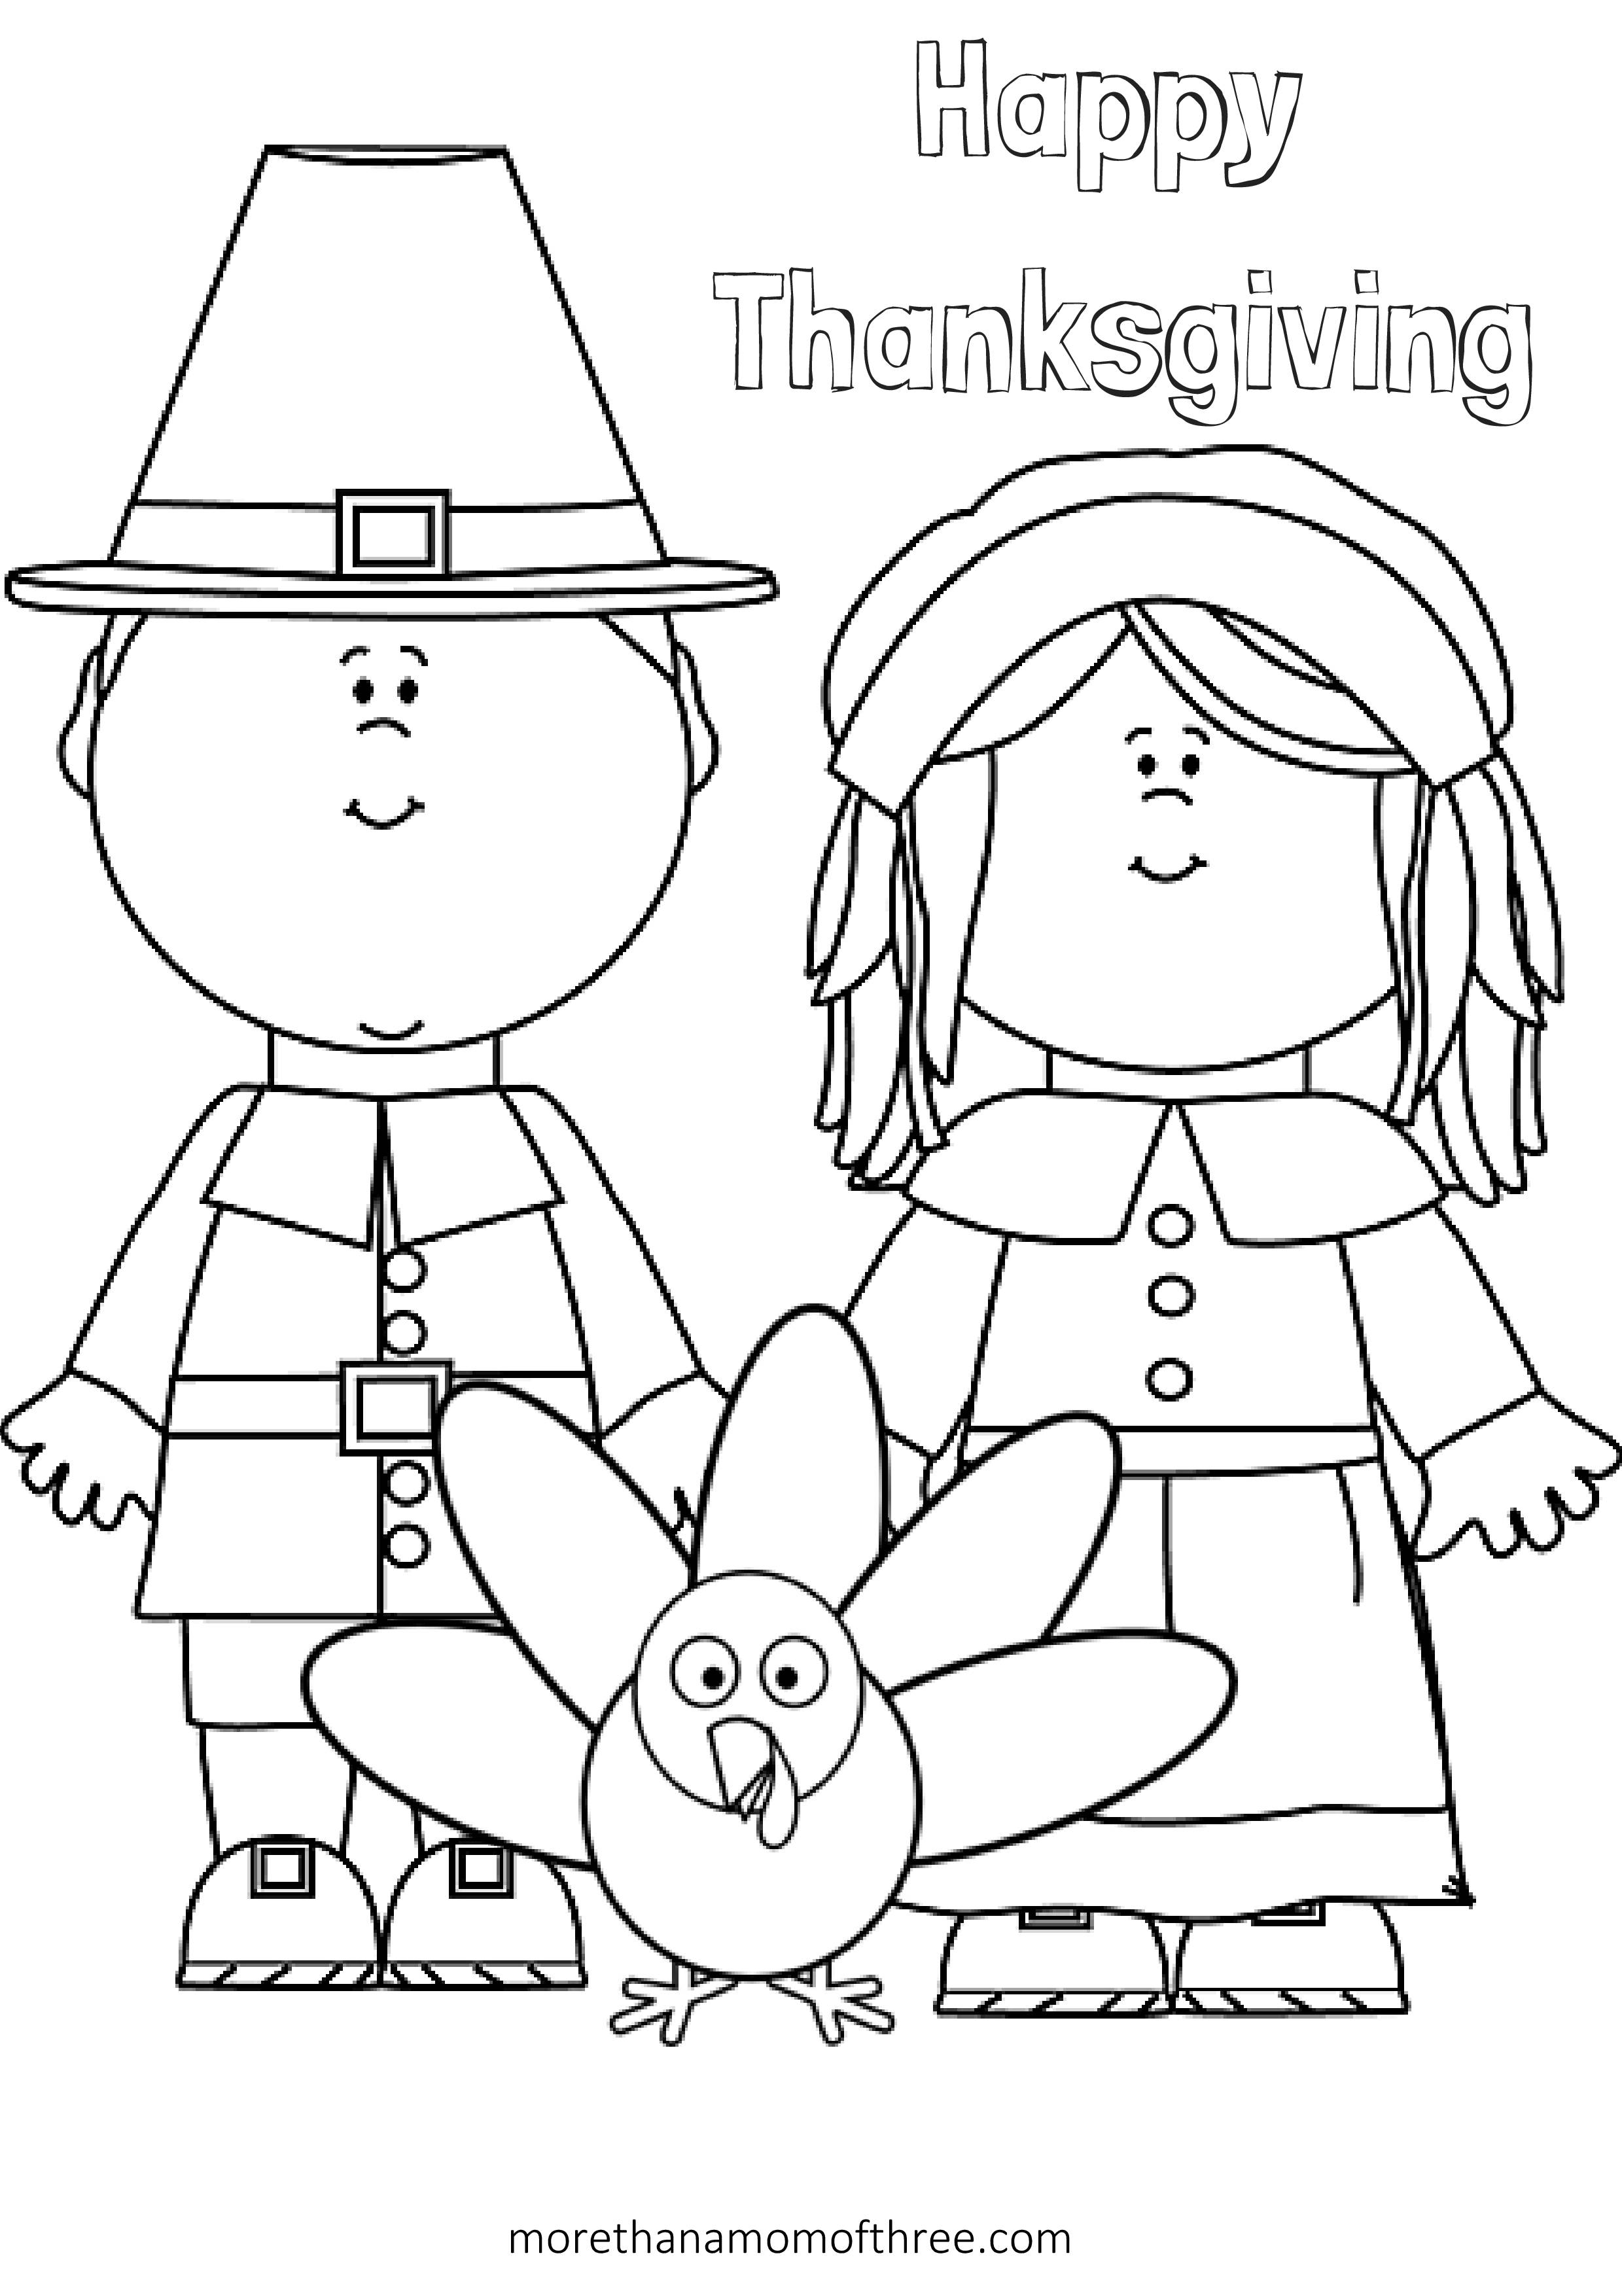 christian thanksgiving coloring pages free - photo#41